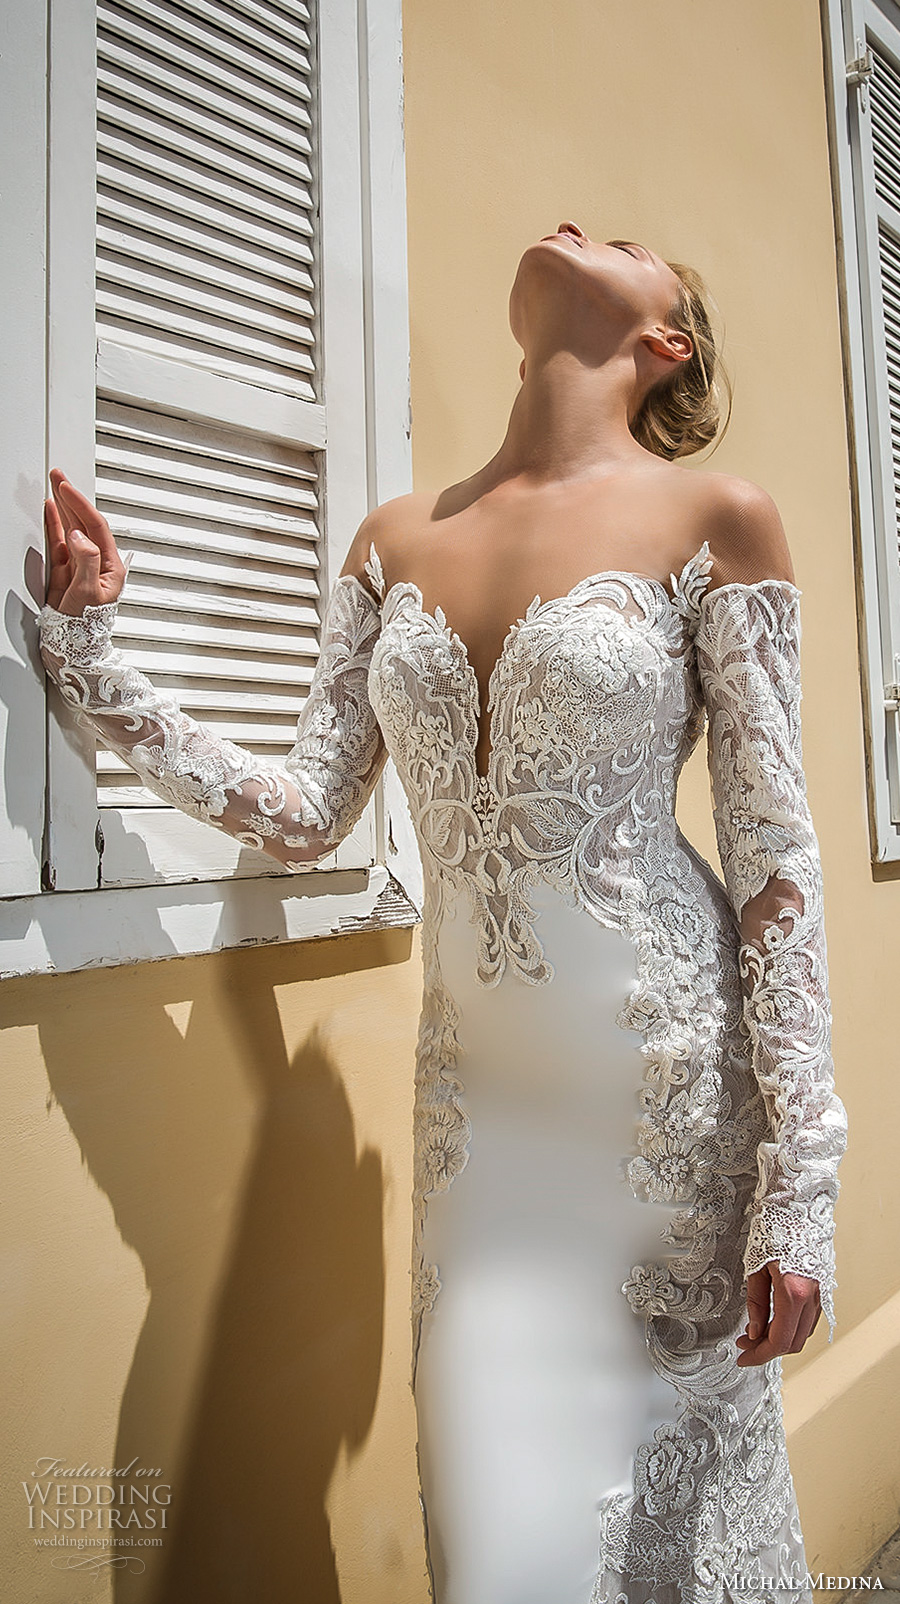 michal medina 2017 bridal off the shoulder long sleeves deep plunging sweetheart neckline heavily embellished bodice elegant sheath wedding dress open low back chapel train (audrey) zv